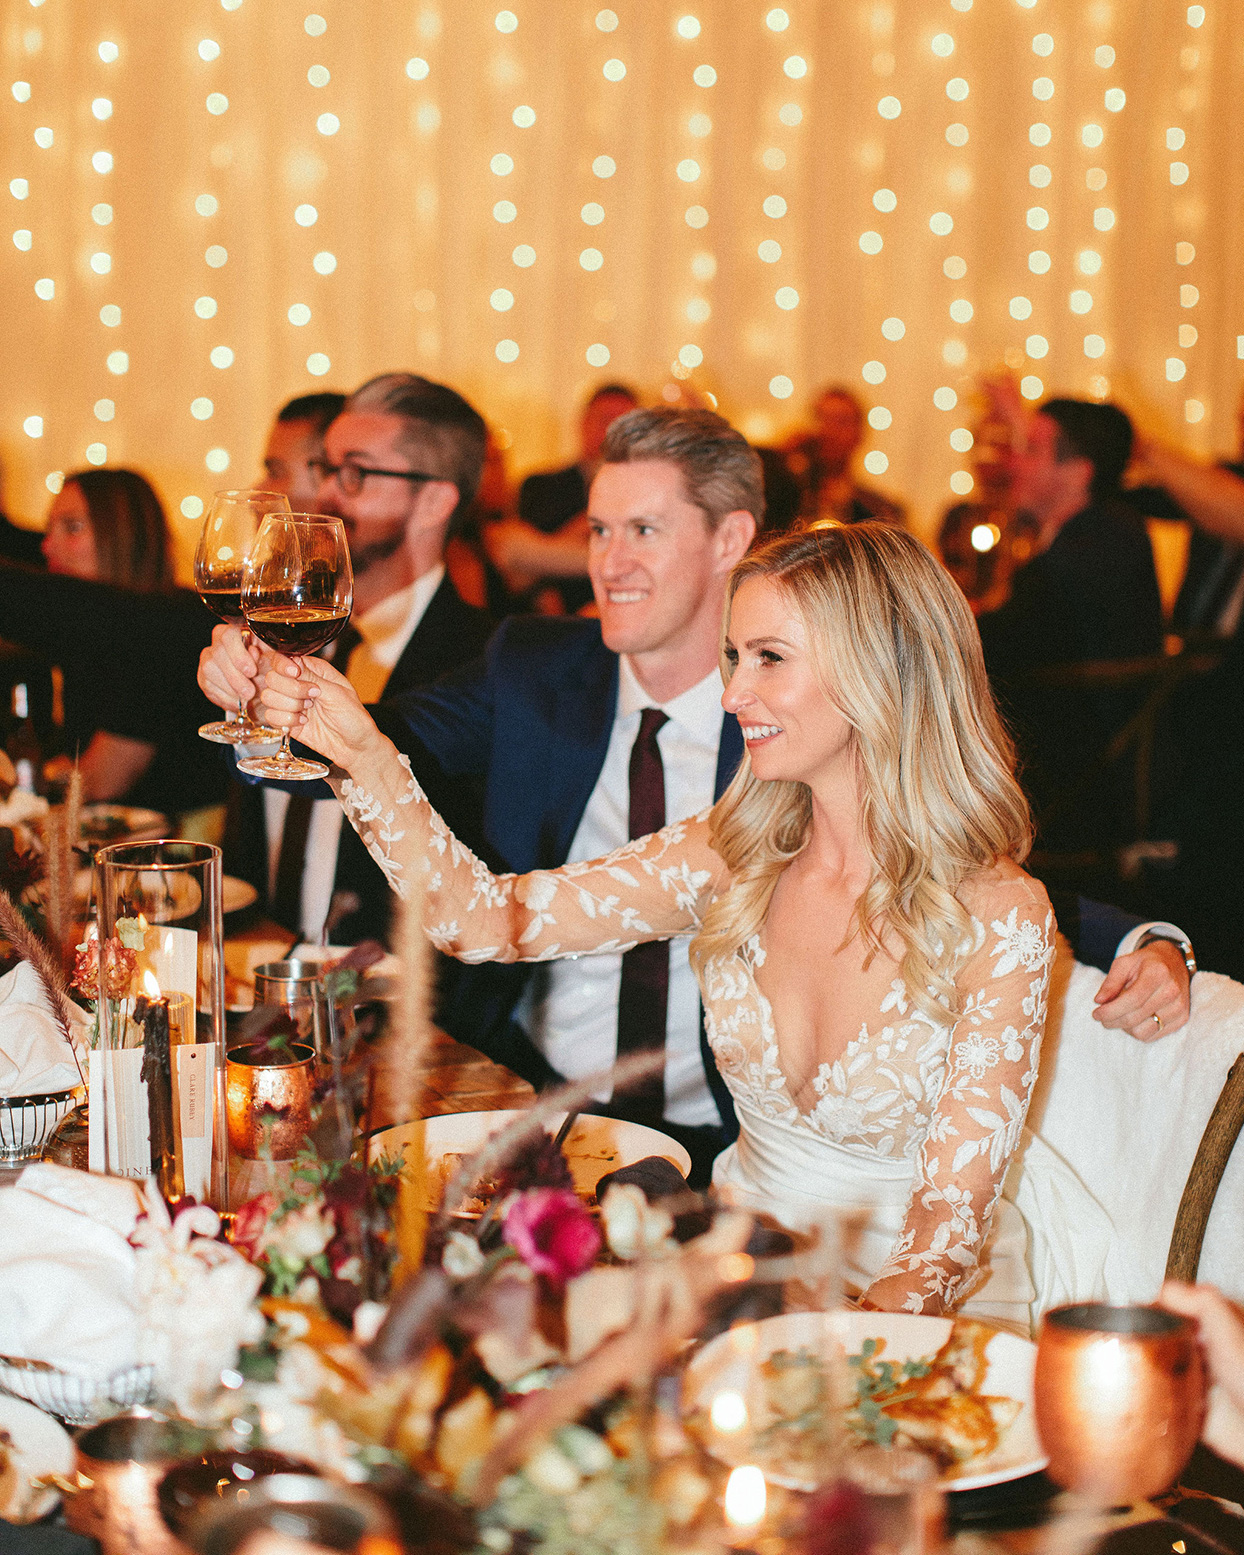 clare tim wedding couple toasting during reception